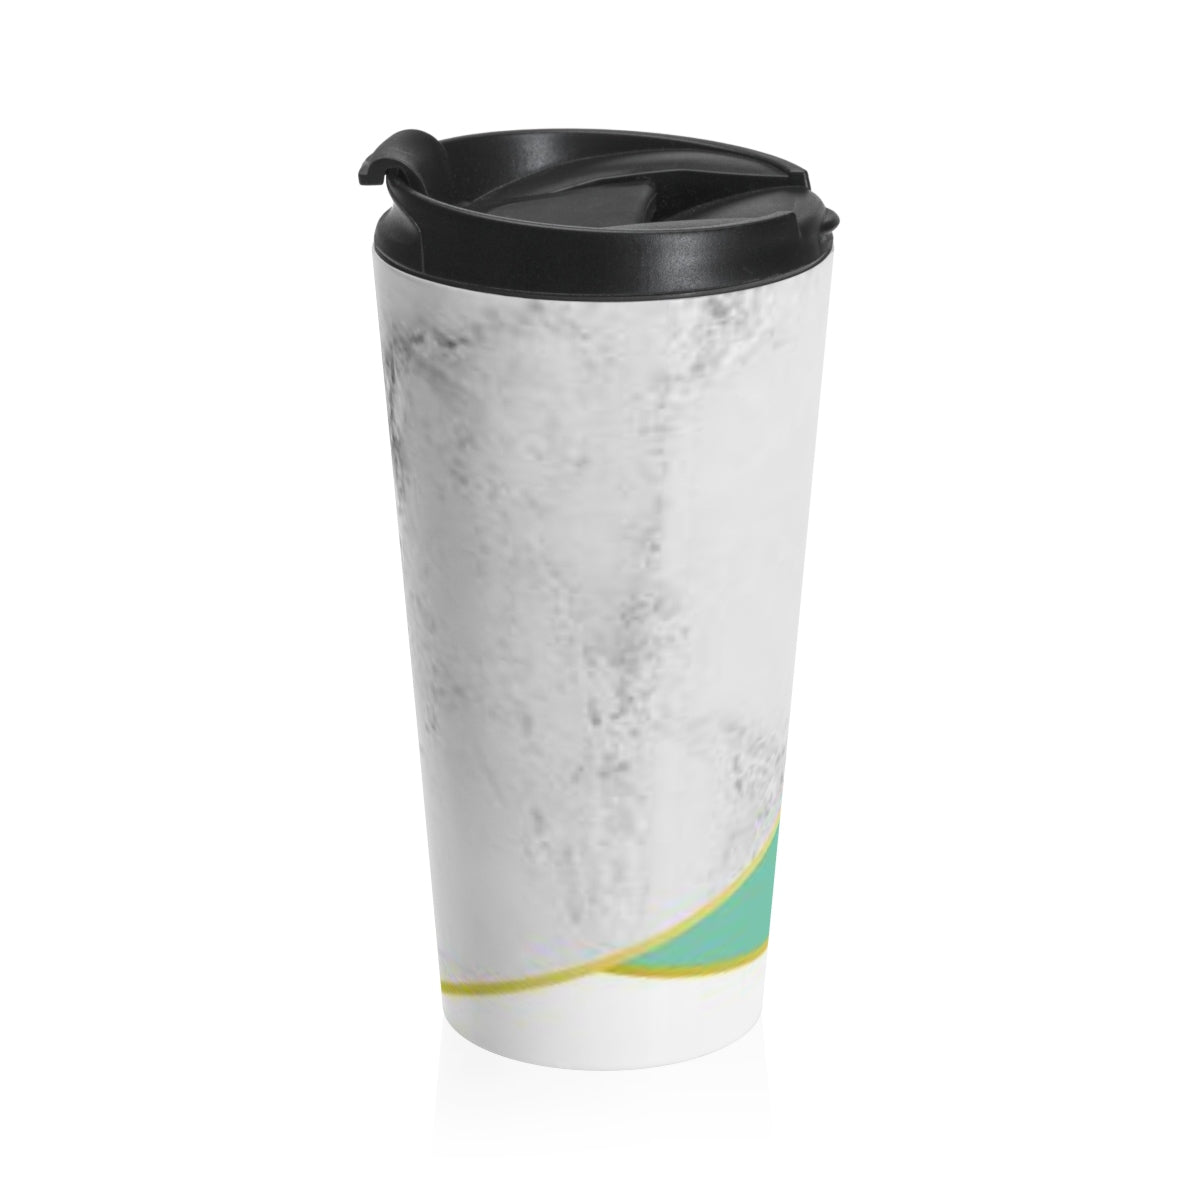 Mint & Marble Stainless Steel Travel Mug